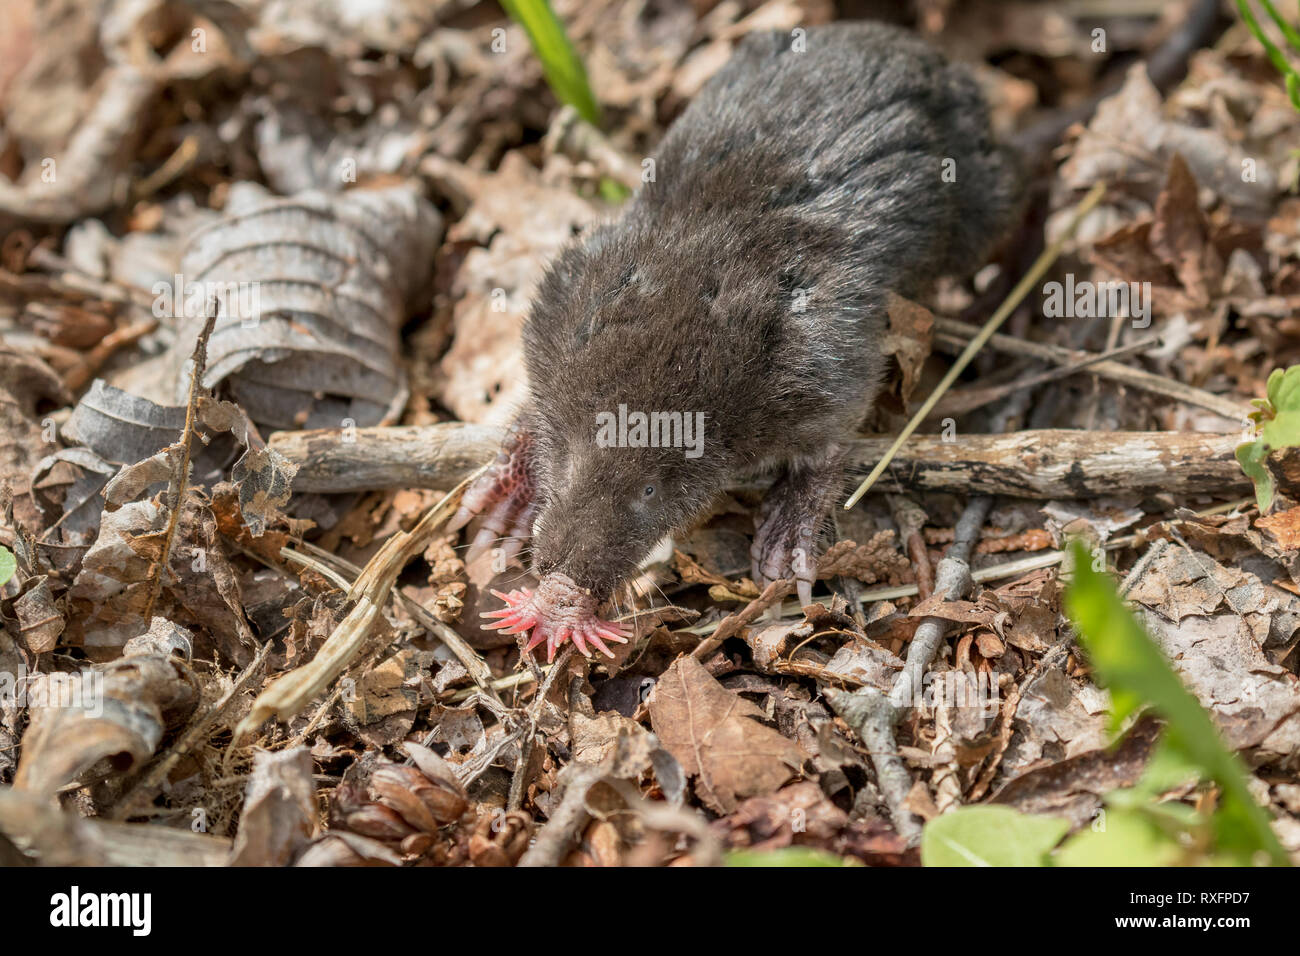 Star-nosed Mole (Condylura cristata), Mac Johnson Wildlife Area, Brockville, Ontario, Canada - the mole has twenty-two pink fleshy appendages ringing  - Stock Image